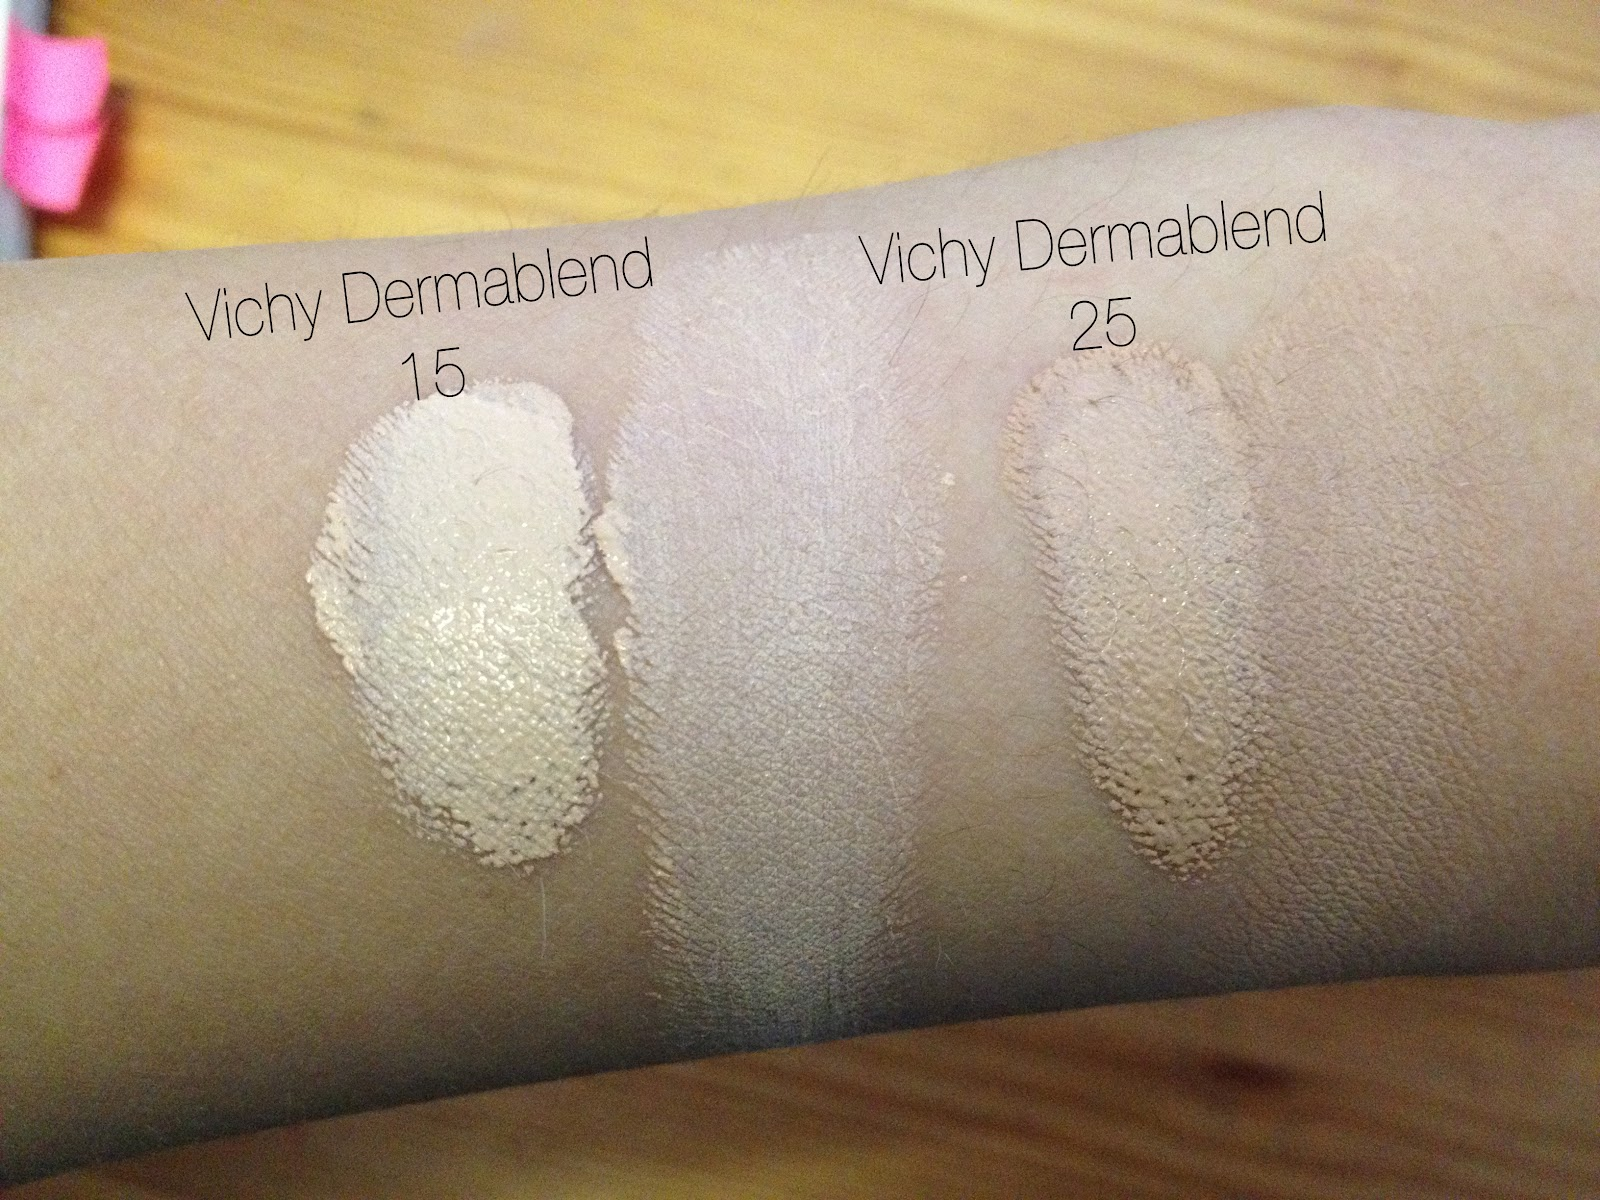 Review vichy dermablend foundation 9 out of ten beauty as you can see 15 looks a bit too light for me but that is only because i tanned a tiny bit in winter its a perfect color for me geenschuldenfo Gallery